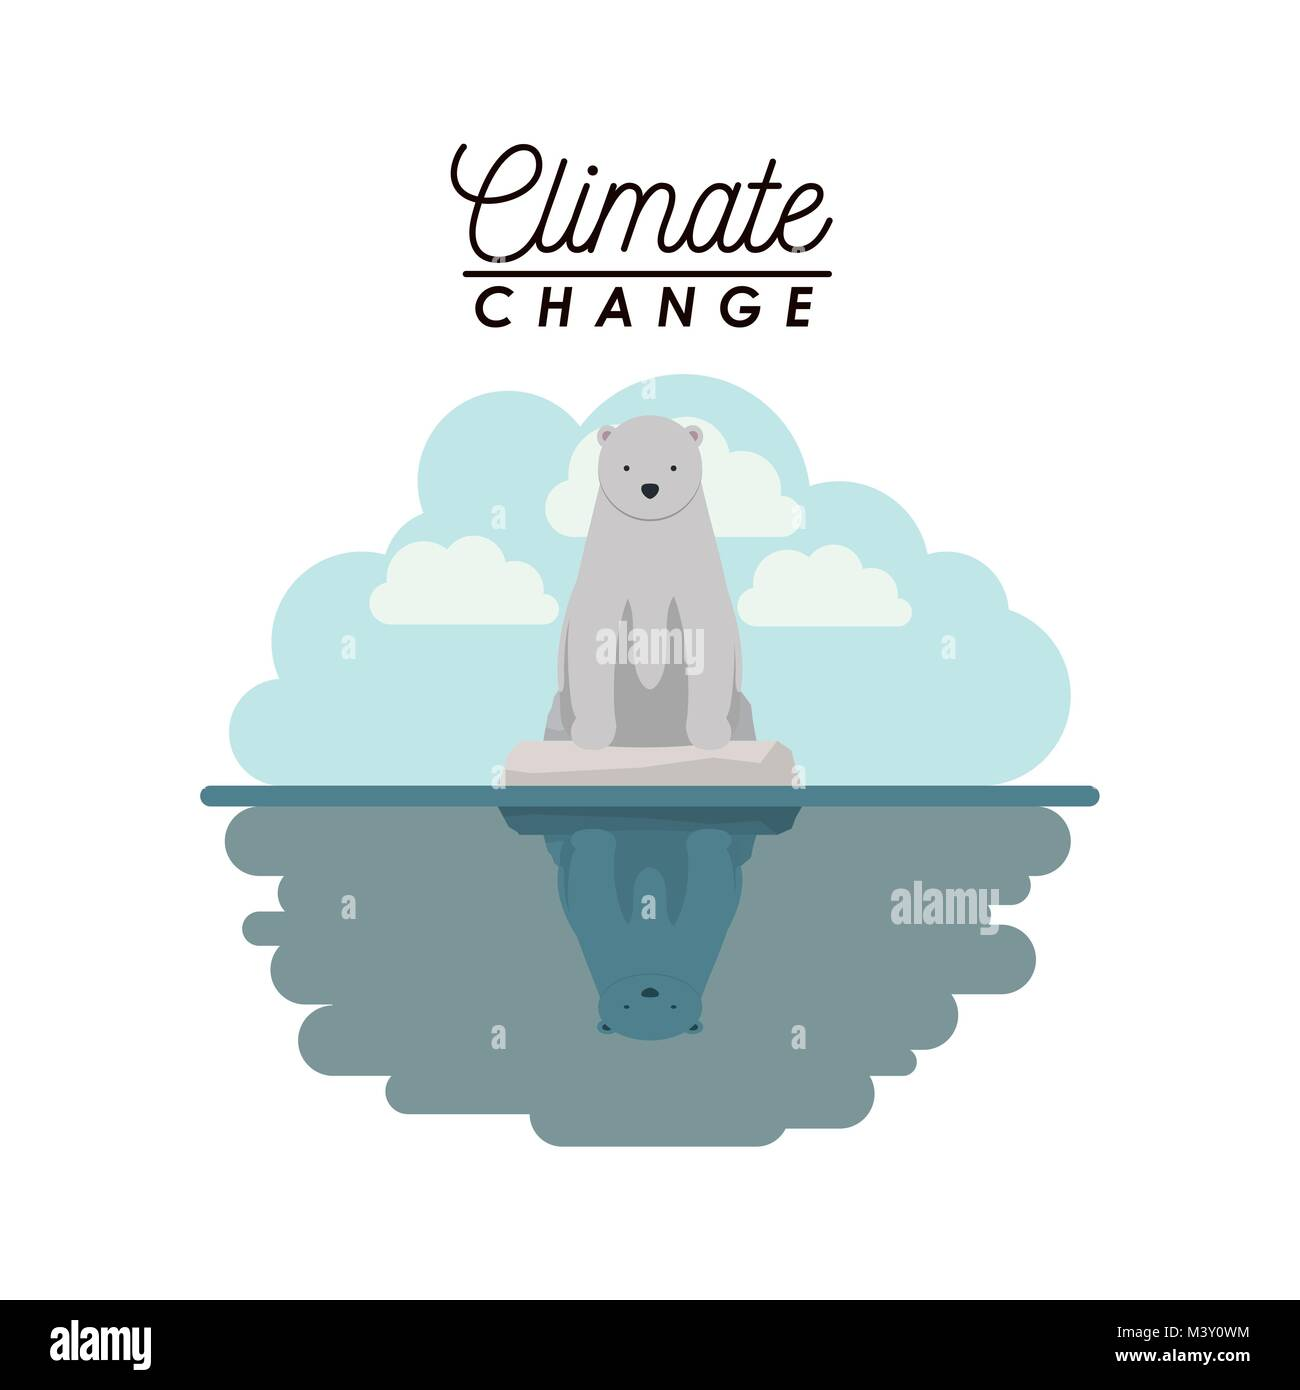 effects of climate change - Stock Image